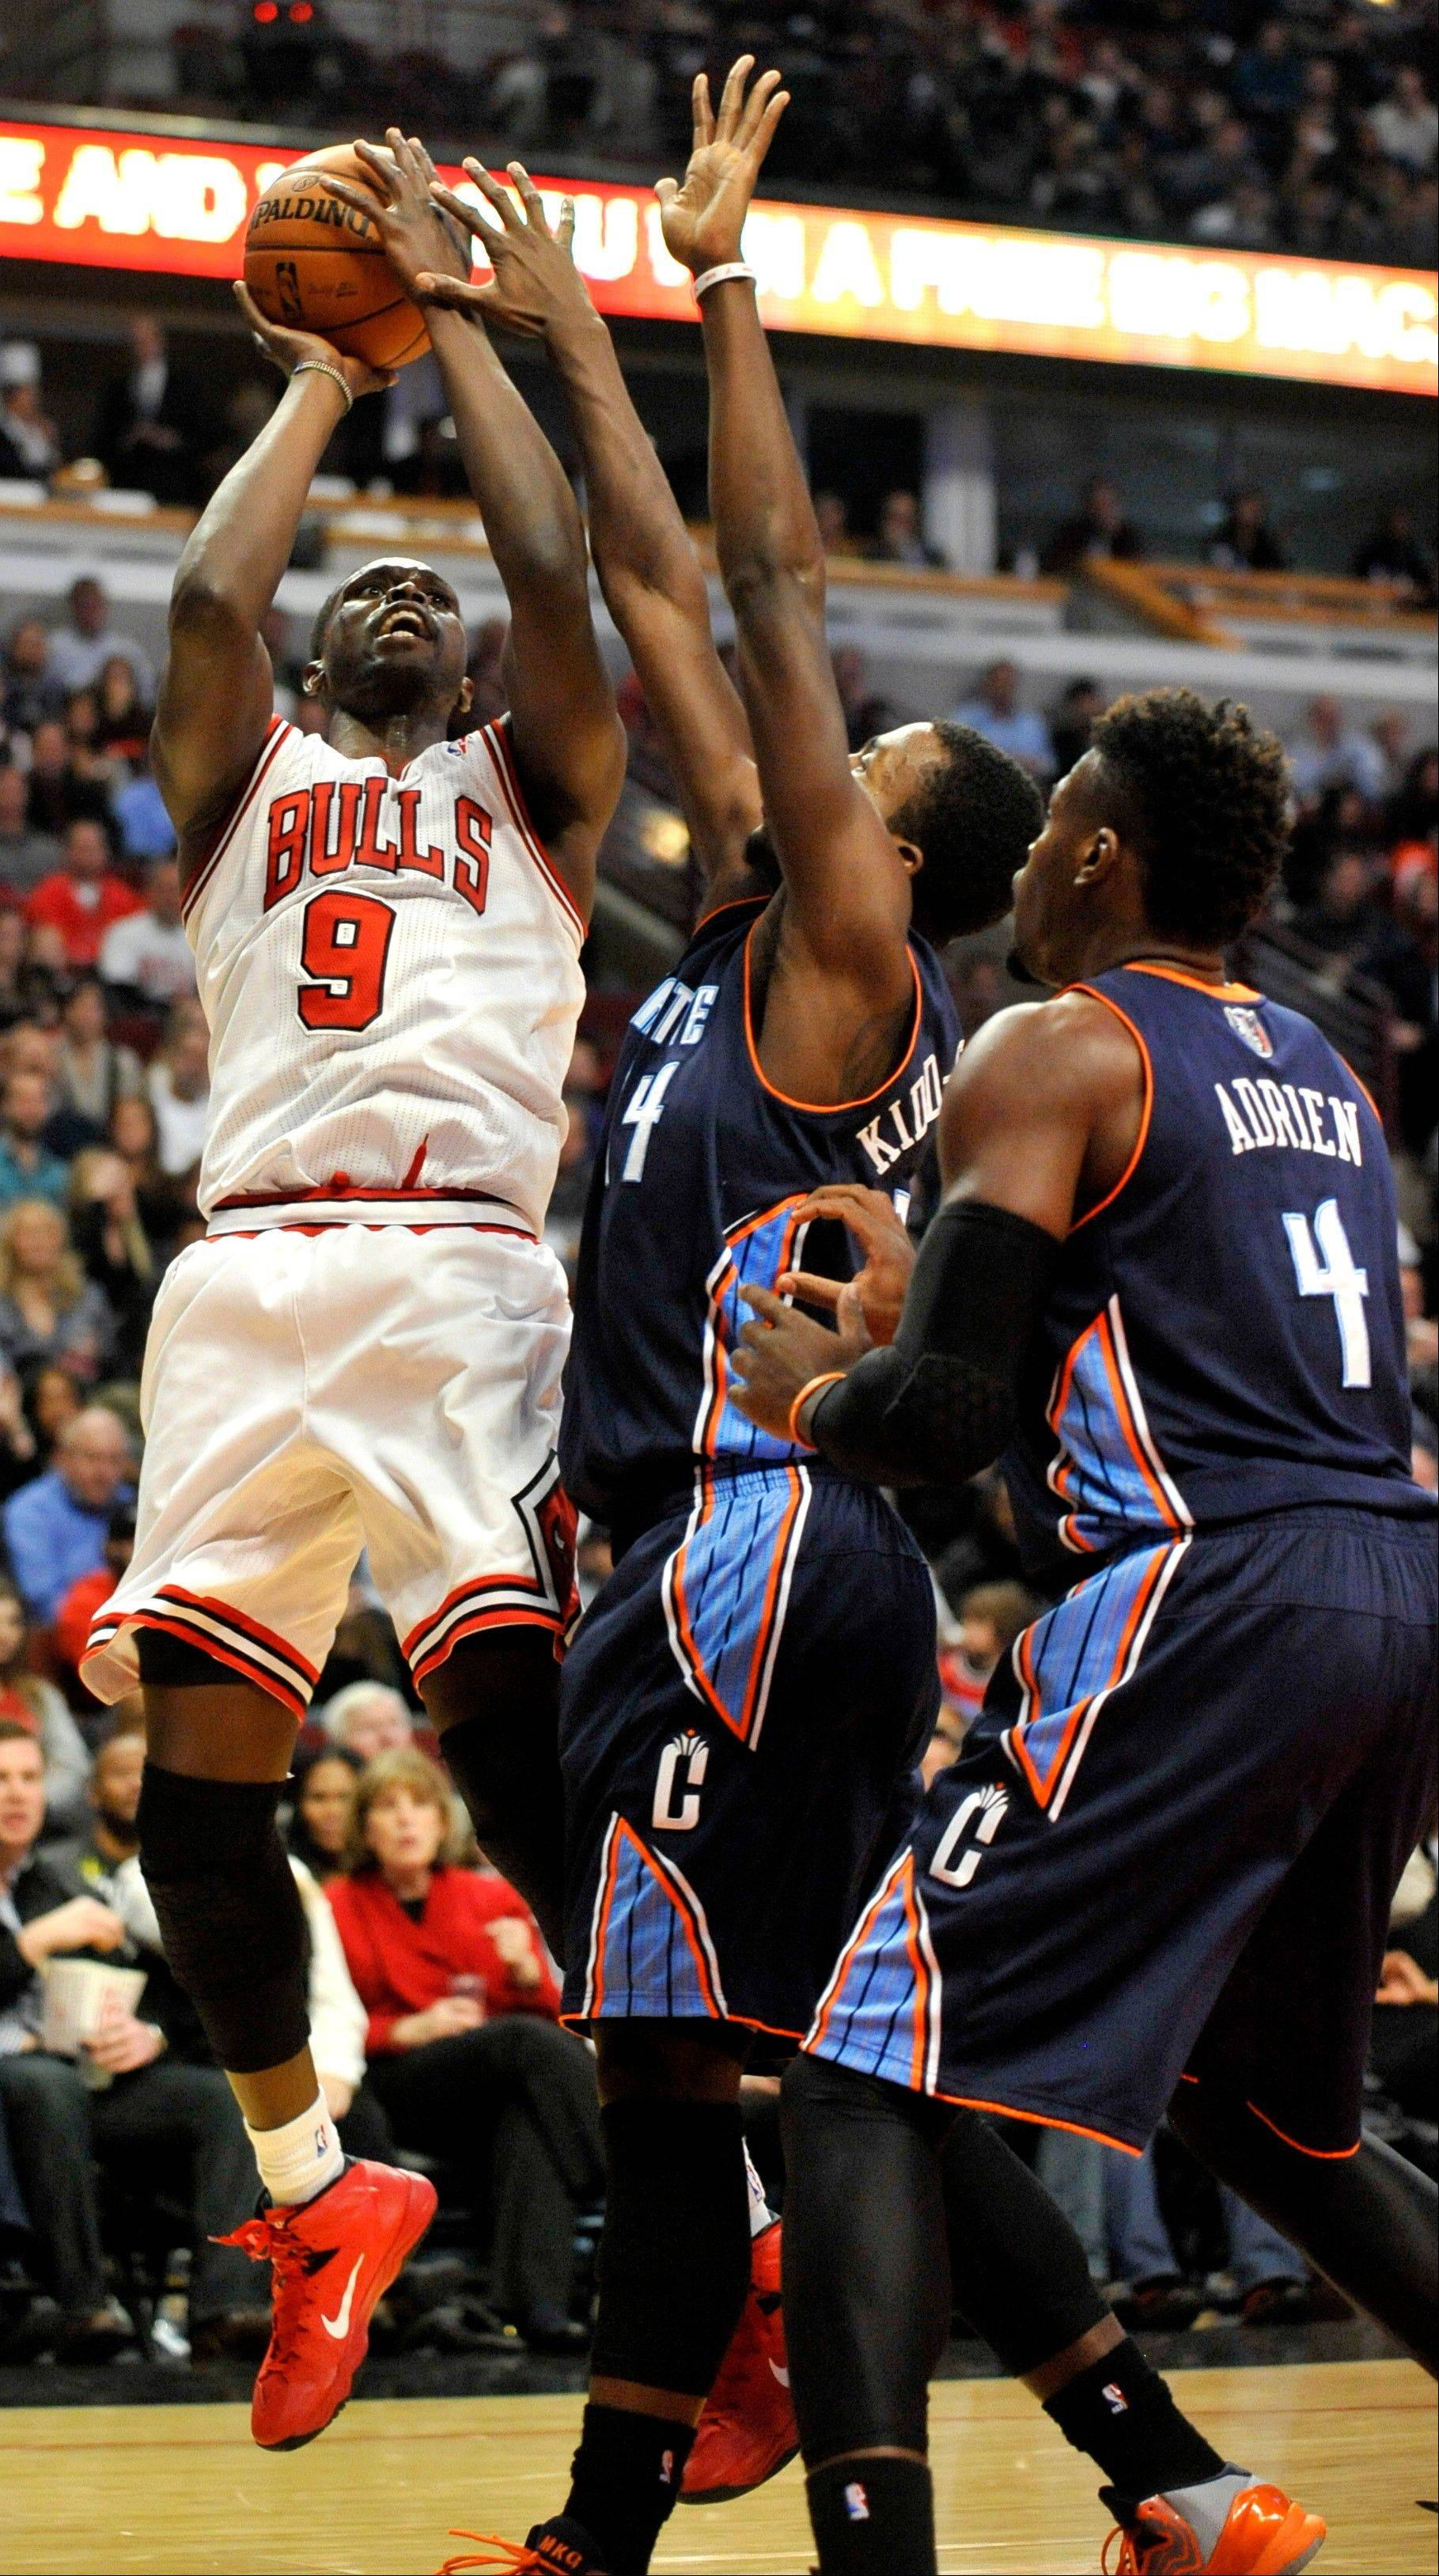 The Bulls' Luol Deng goes up for a shot against Charlotte's Michael Kidd-Gilchrist (14) and Jeff Adrien (4) during the second quarter of Monday's game in Chicago.